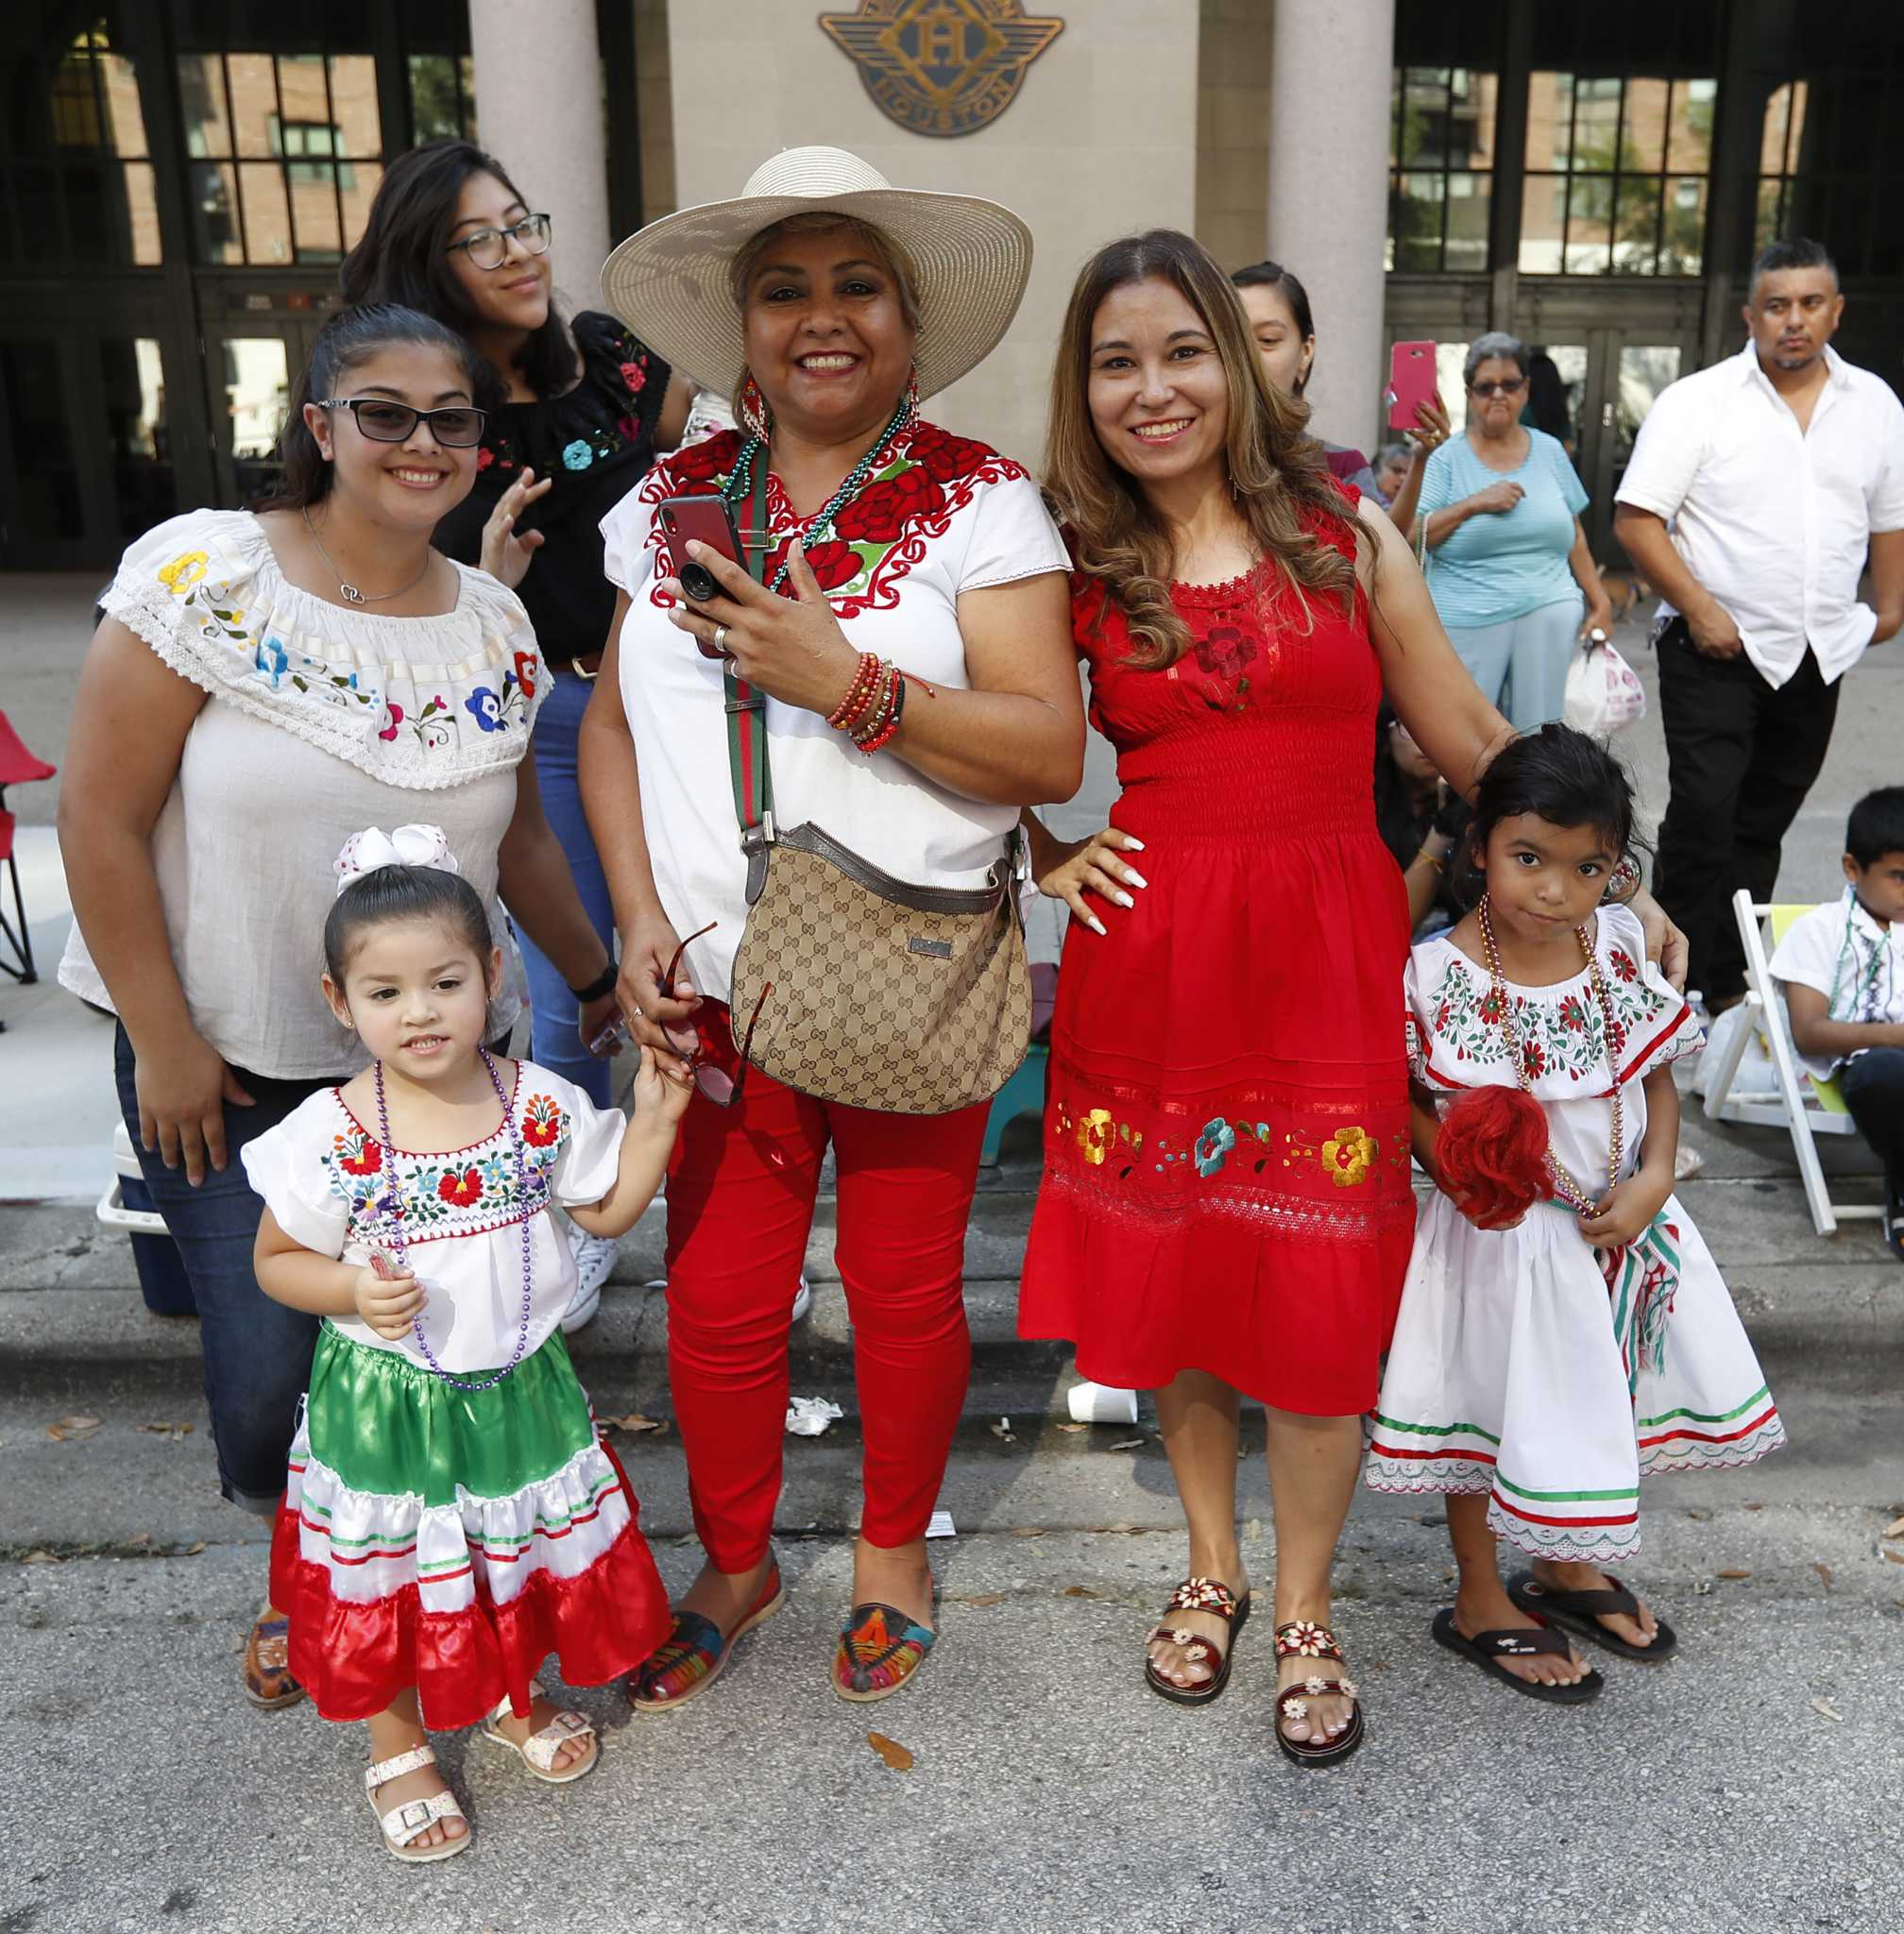 Downtown Houston was green, white and red for the 2019 Fiestas Patrias Parade